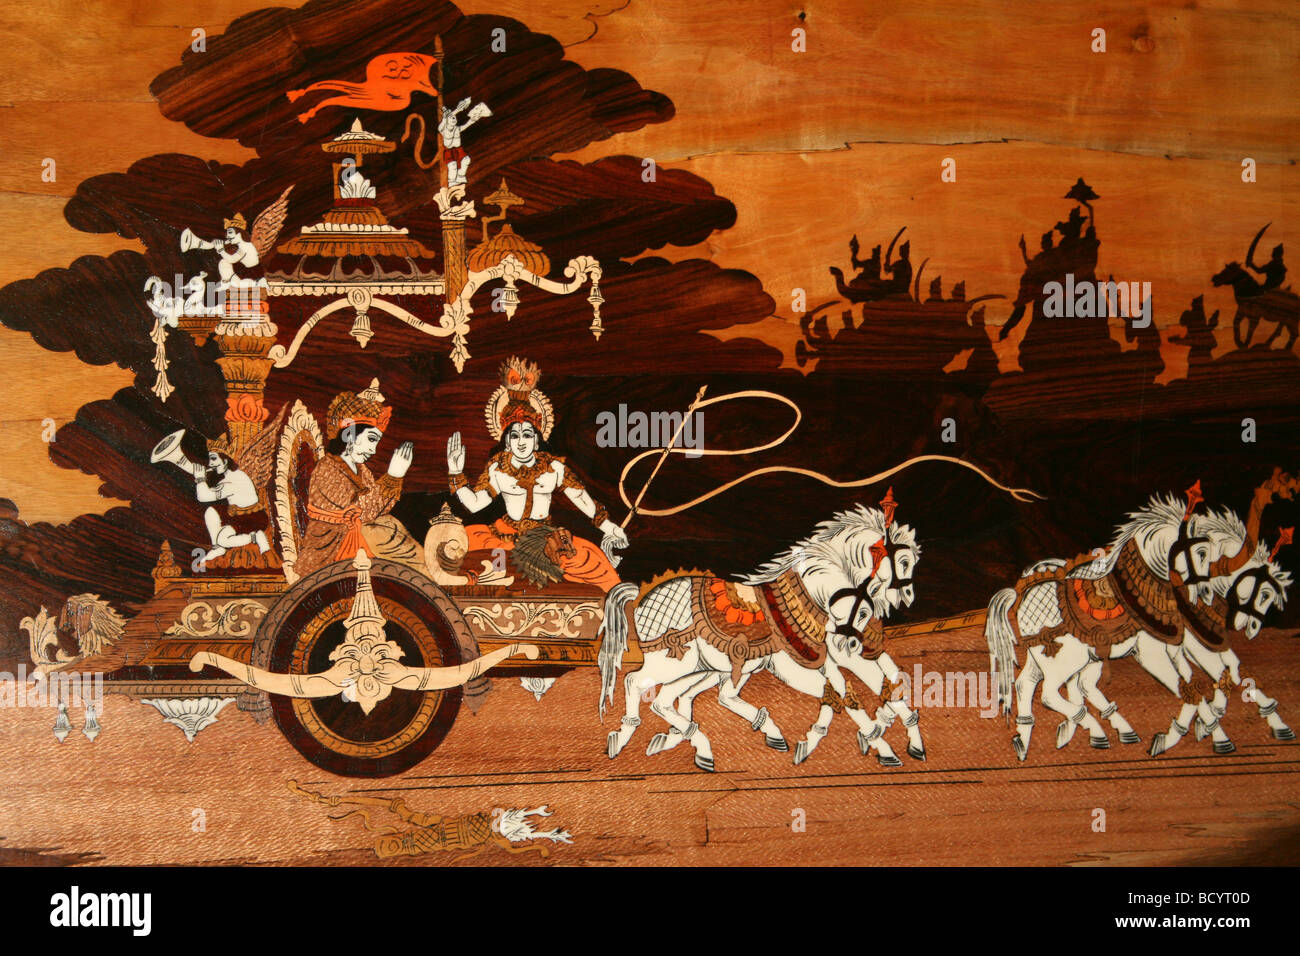 Indian Marquetry Panel Showing Horse Drawn Carriage - Stock Image